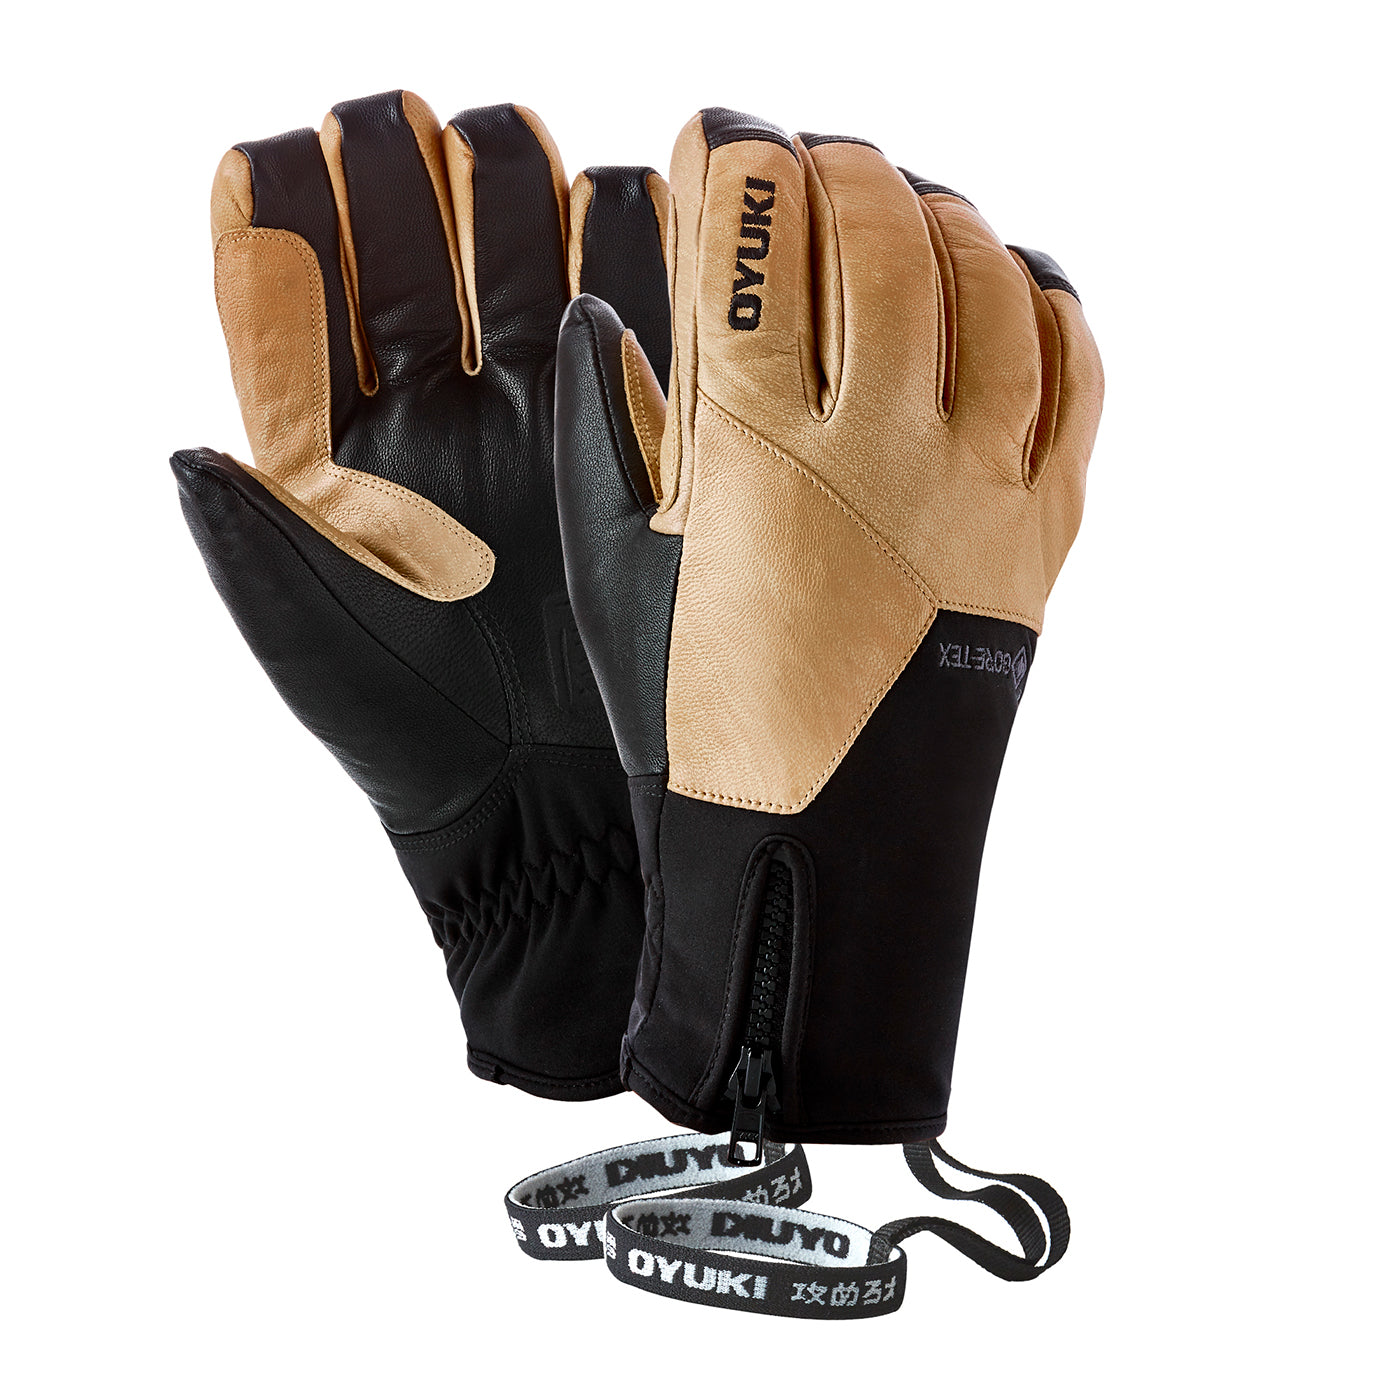 Oyuki Tamashii GTX Glove | Sandstone- Shop Skis and snow gear online nz - snowscene